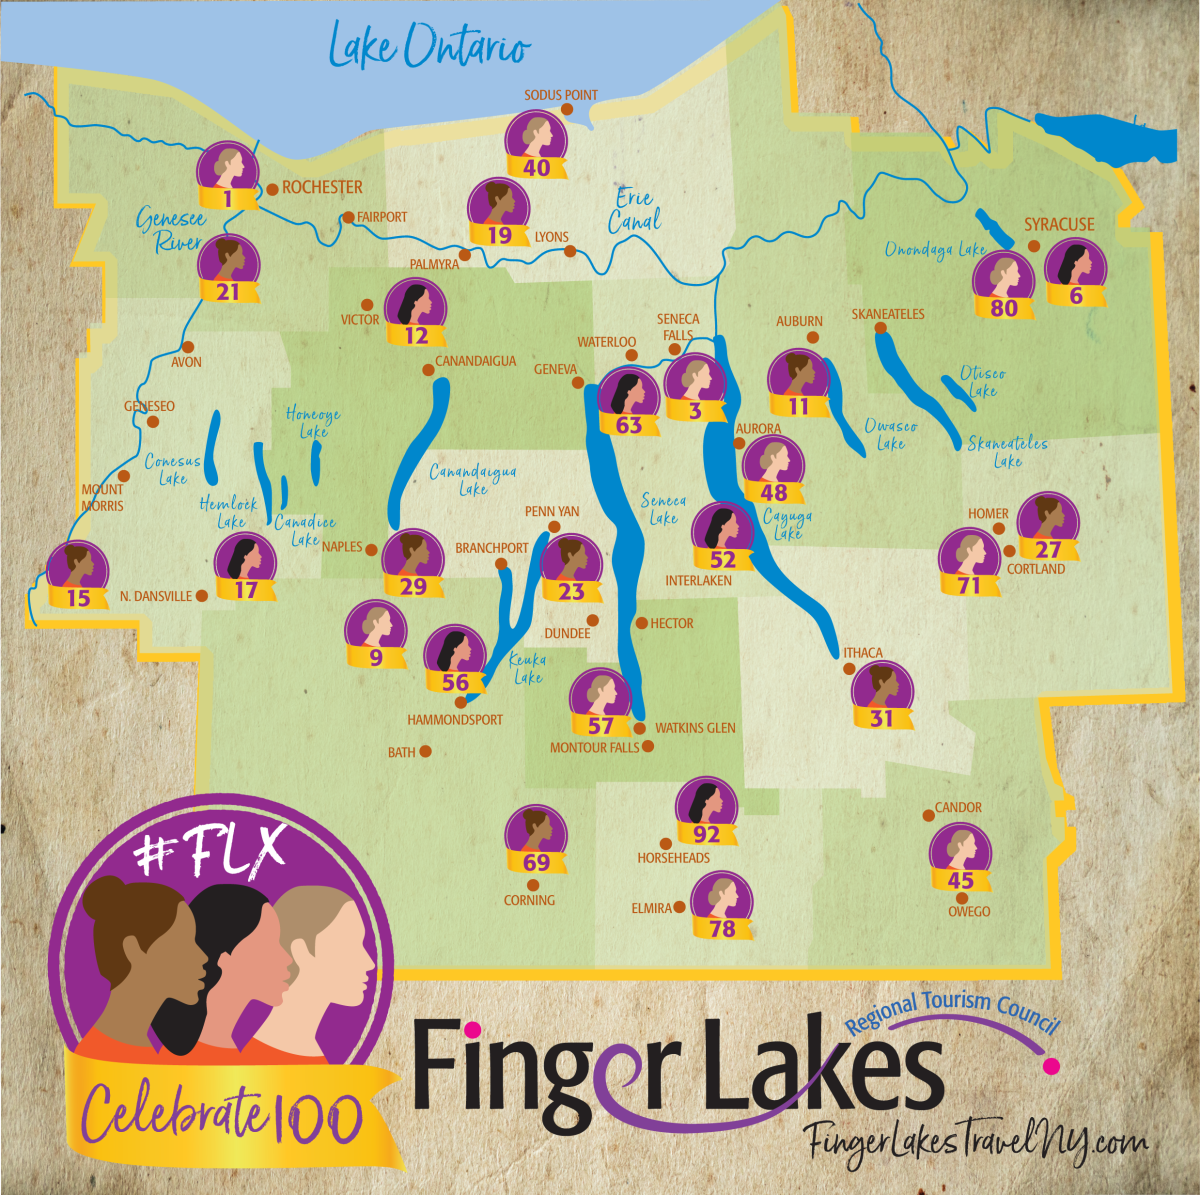 100 Ways to Celebrate Women Empowerment in the Finger Lakes